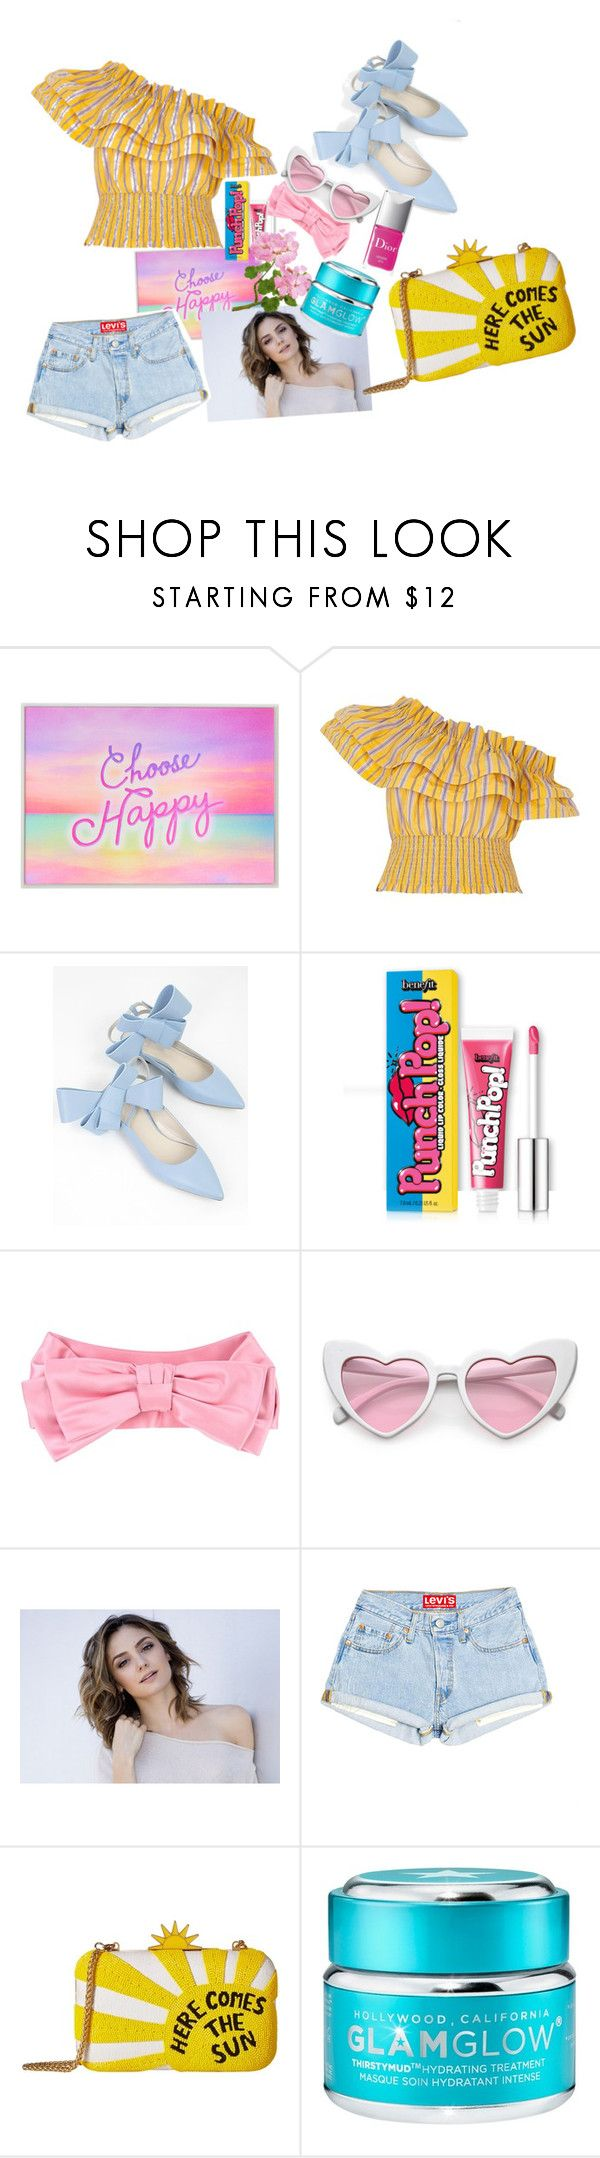 """SPRING IS LOVE"" by anastasiafaithfilipic ❤ liked on Polyvore featuring River Island, Delpozo, Couture Colour, Gucci, Alice + Olivia, GlamGlow, beautystyleset and christinevangelista"